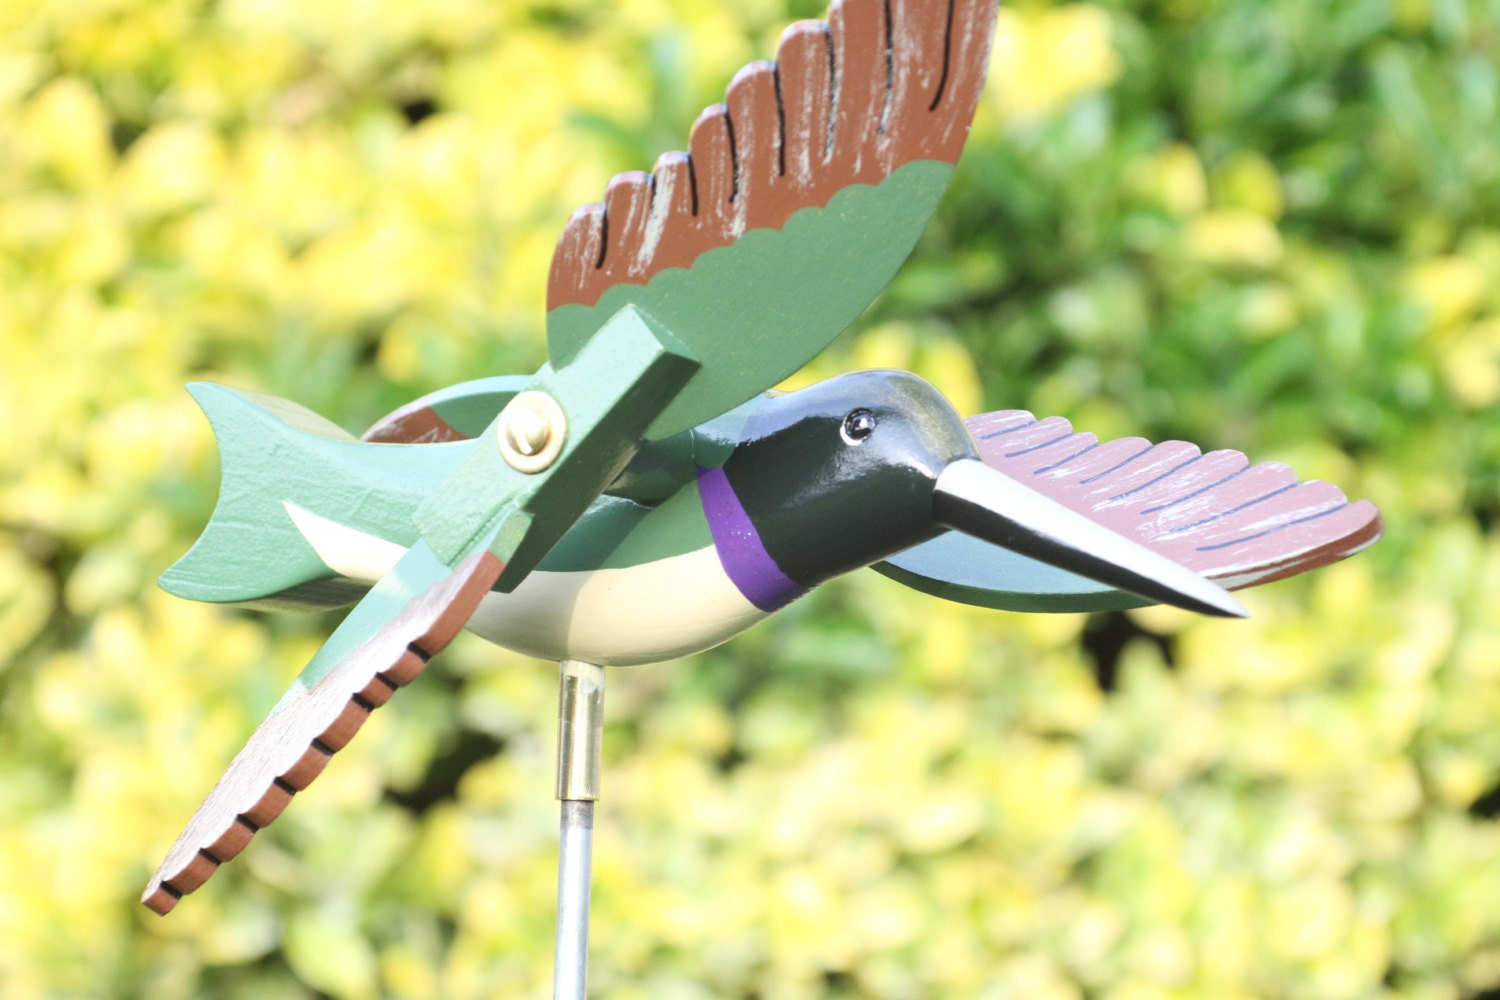 Hummingbird whirligig bird bird garden decor for Hummingbird decor